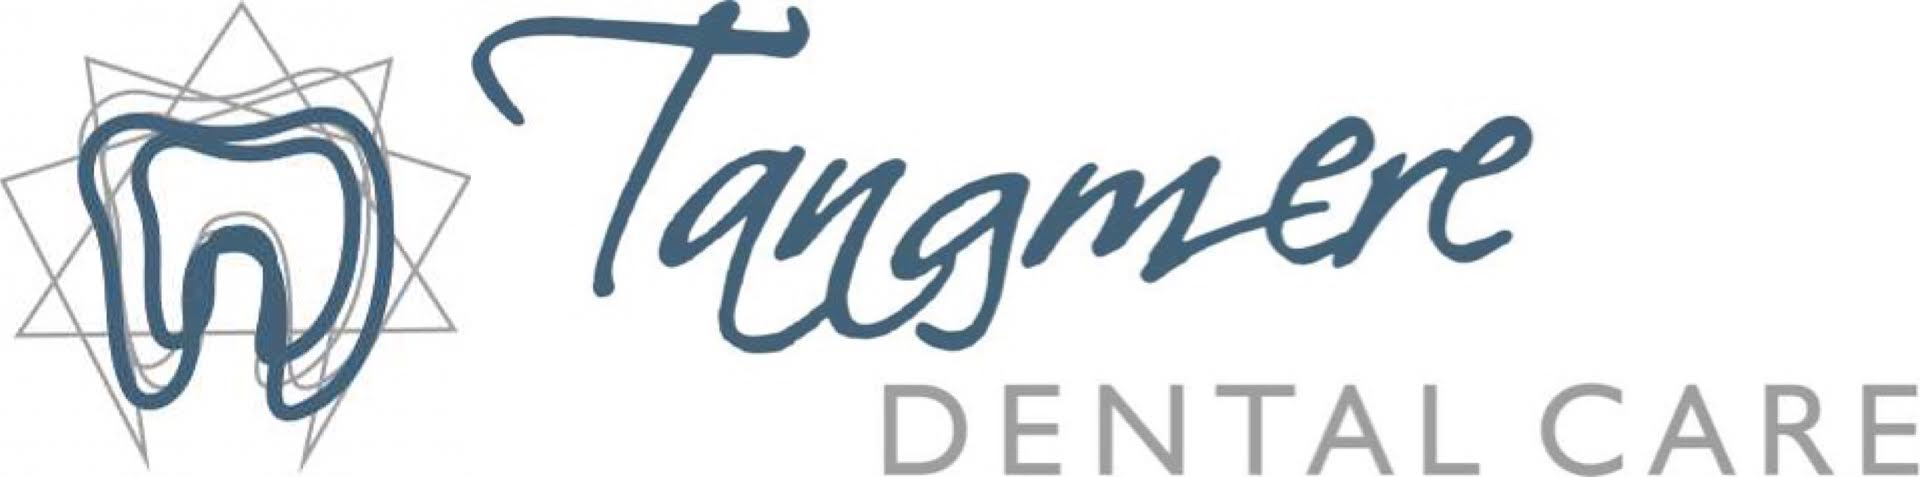 Tangmere Dental Care - Dentists in Chichester West Sussex